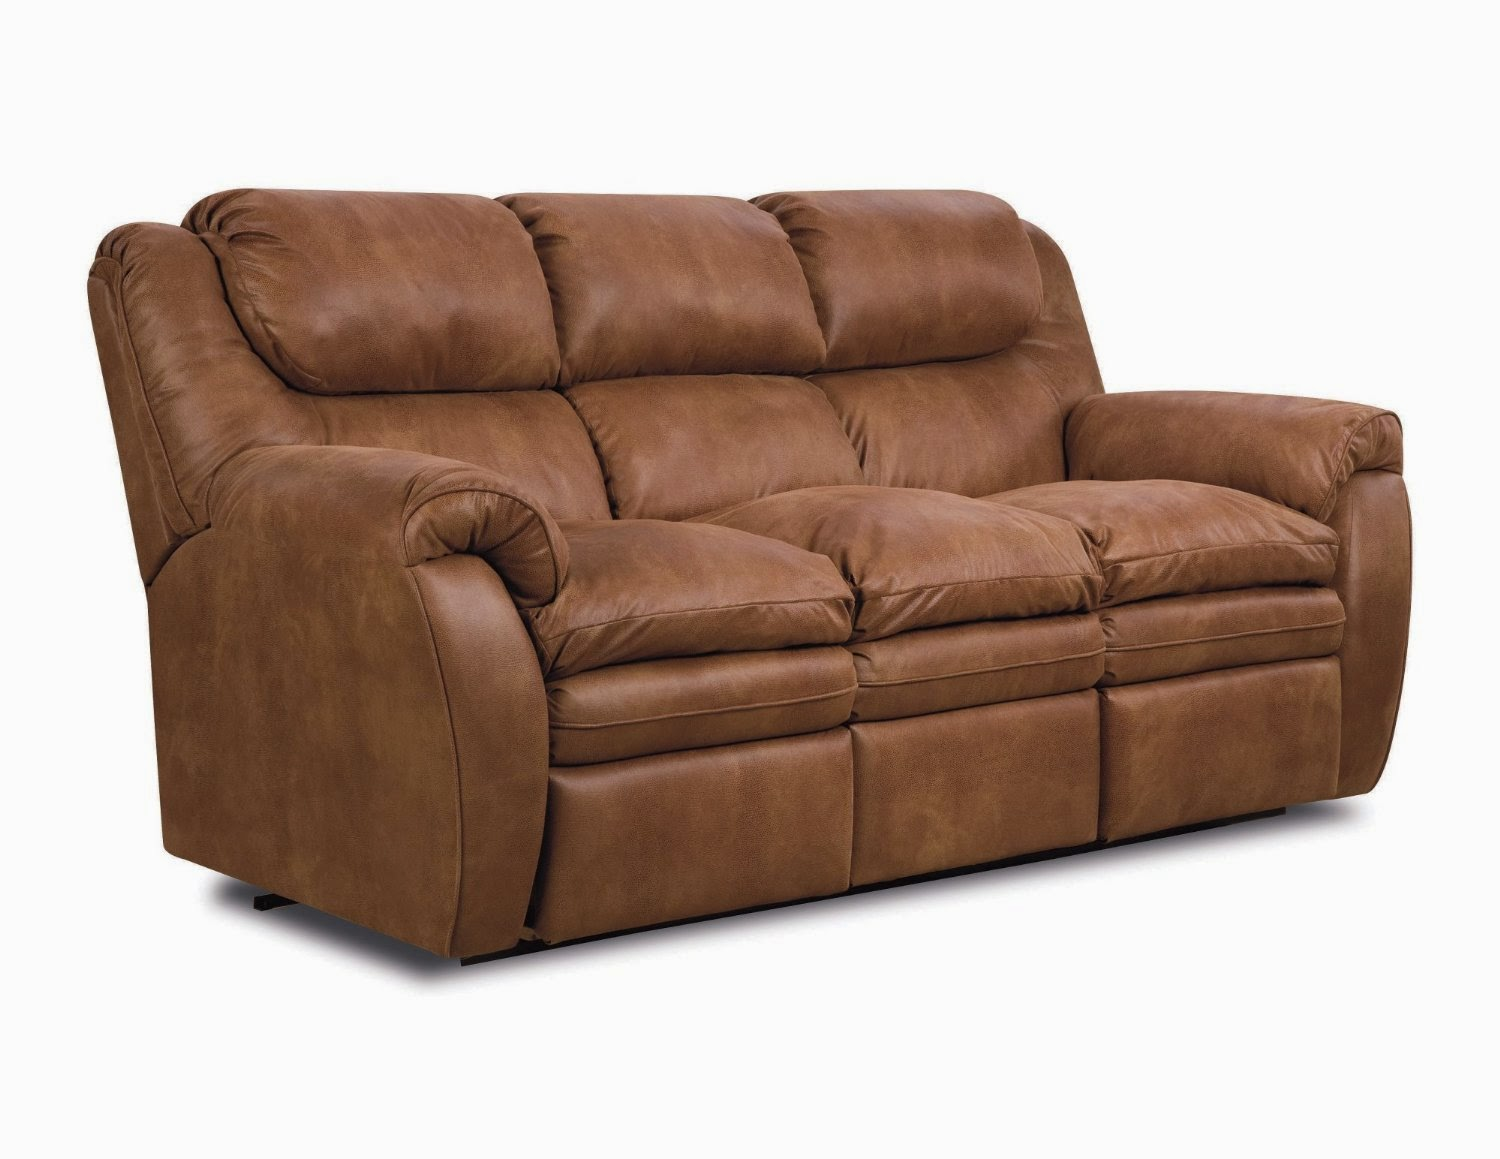 Reclining sofas for sale lane hendrix reclining sofa reviews for Couches and sofas for sale